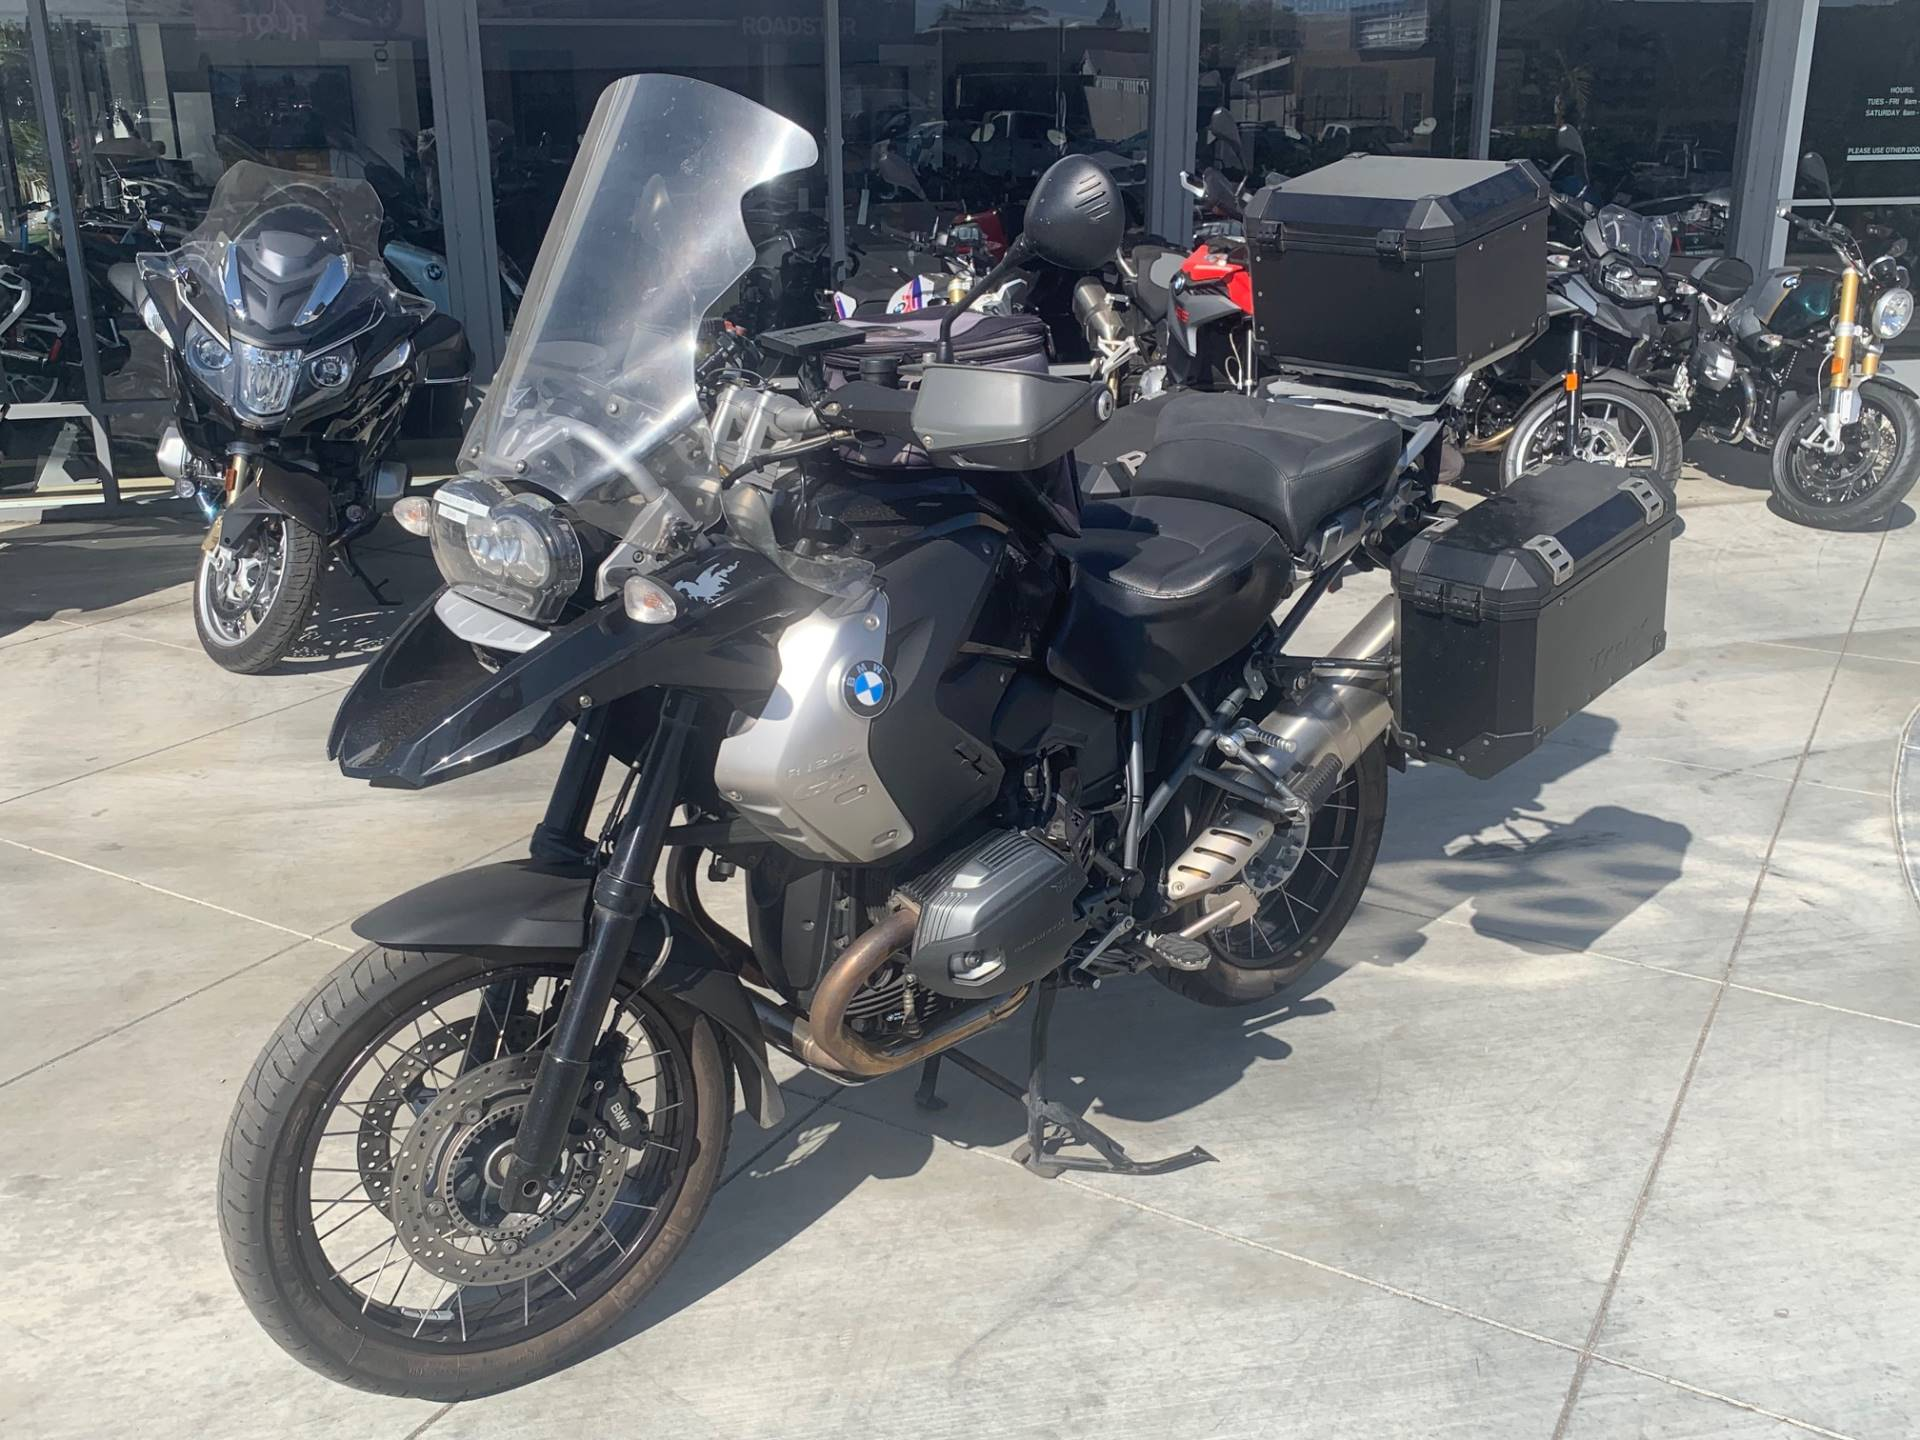 2011 BMW R 1200 GS in Orange, California - Photo 2